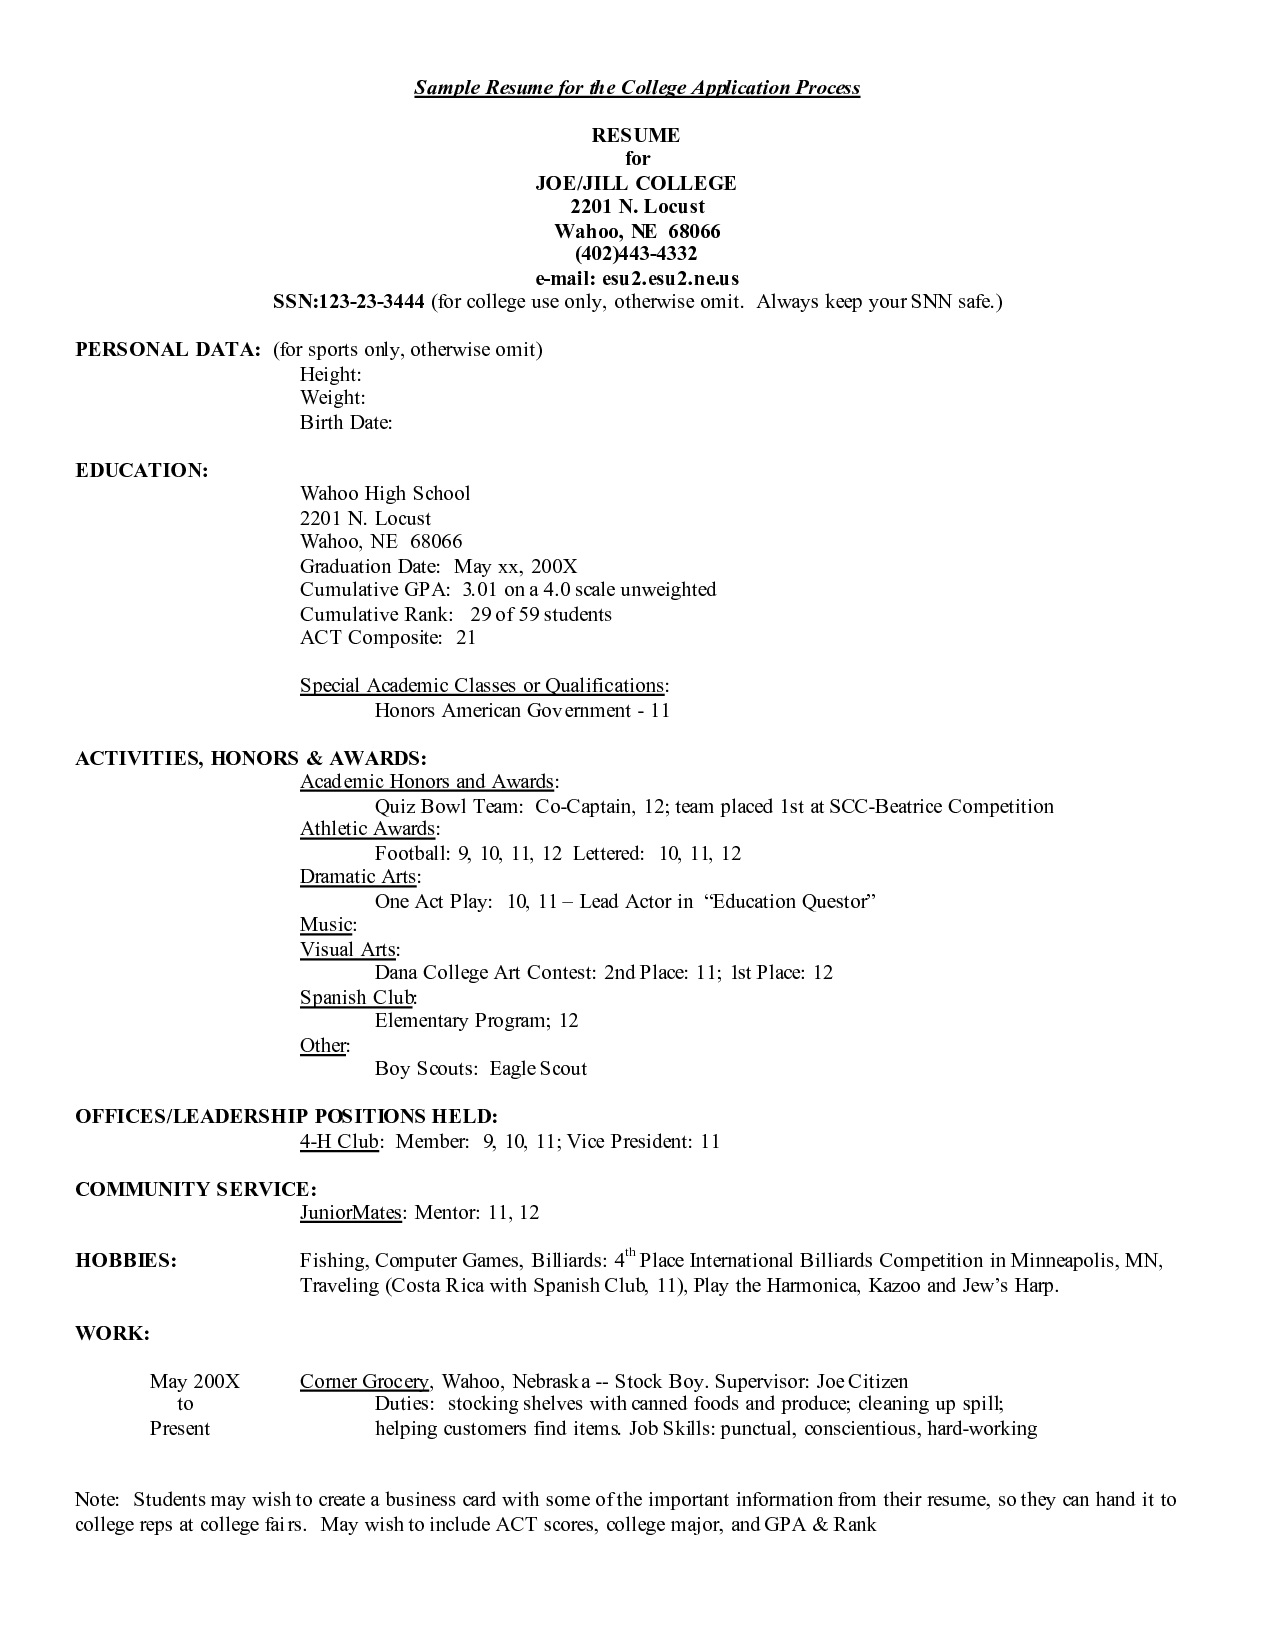 Resume Samples for College Applications Sample Resume